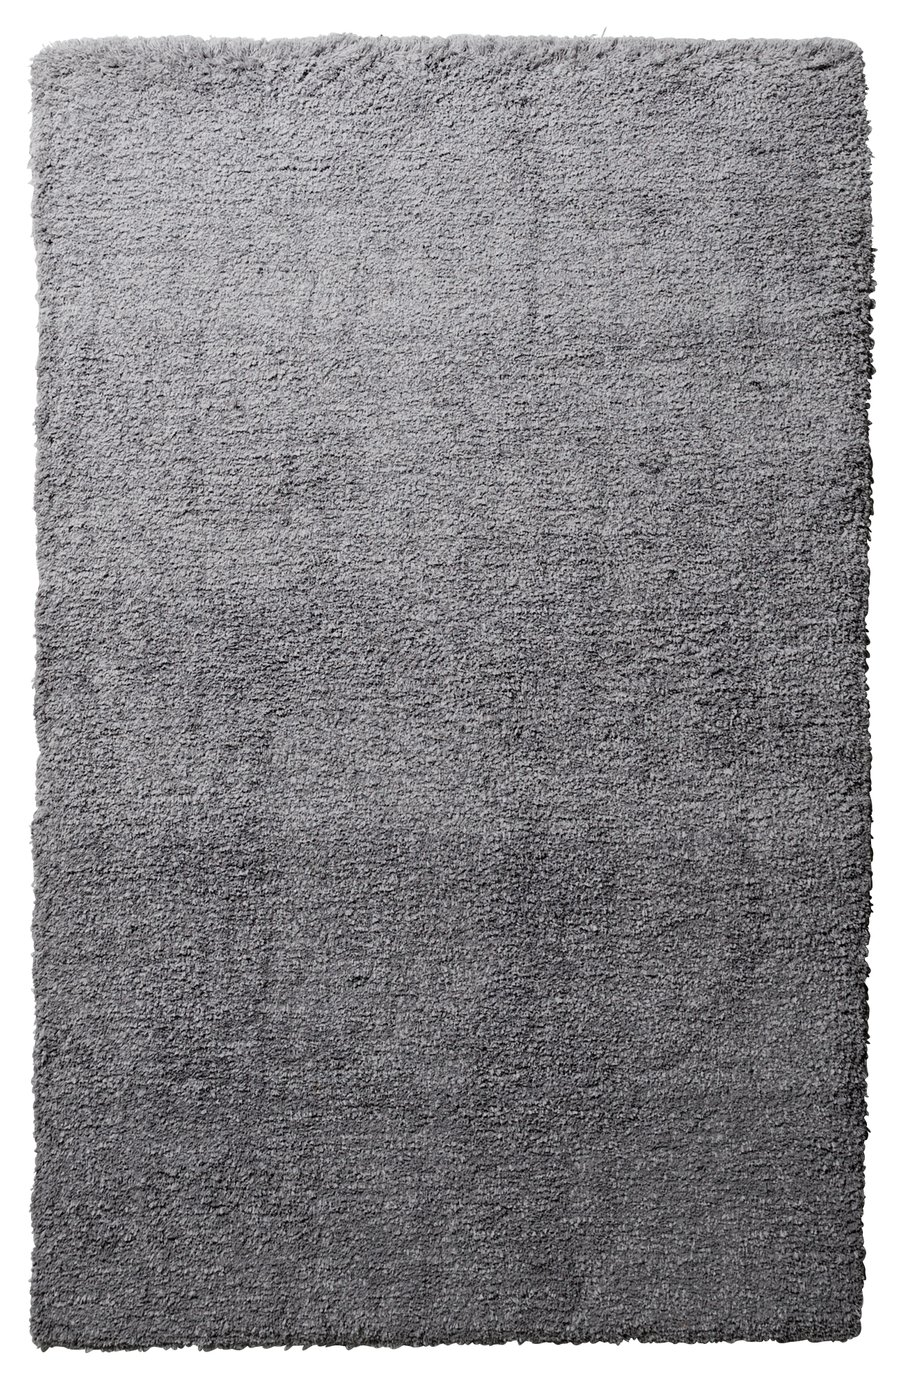 Collection Ombre Supersoft Shaggy Rug - 230x160cm - Grey